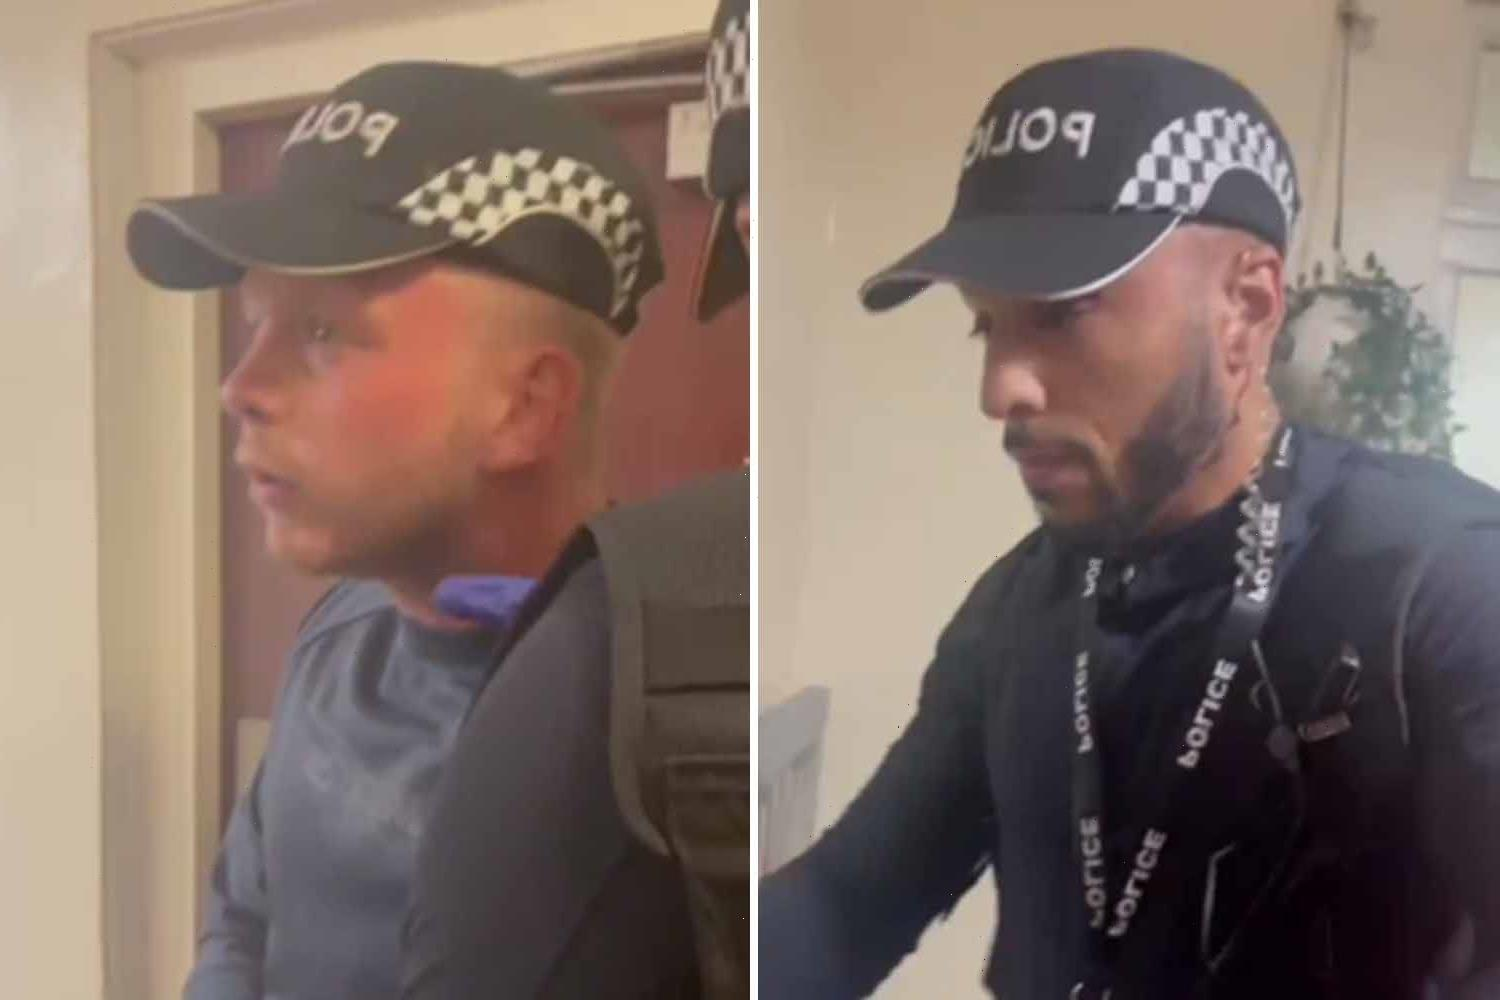 Chilling moment men dressed as fake cops with handcuffs & batons try to get into woman's home demanding to 'search it'